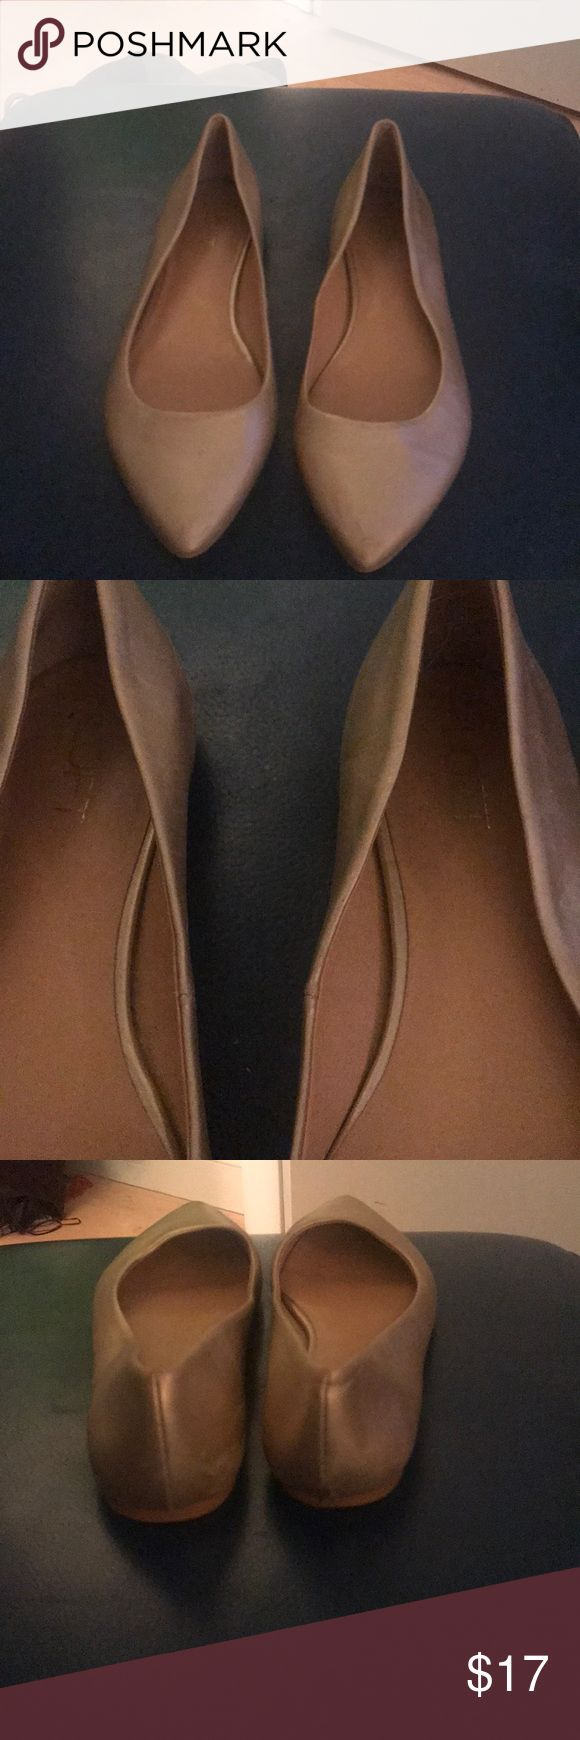 Anne Taylor Loft gold flats size 8.5 Anne taylor loft gold flats size 8.5   Worn a few times , great condition anne taylor loft Shoes Flats & Loafers